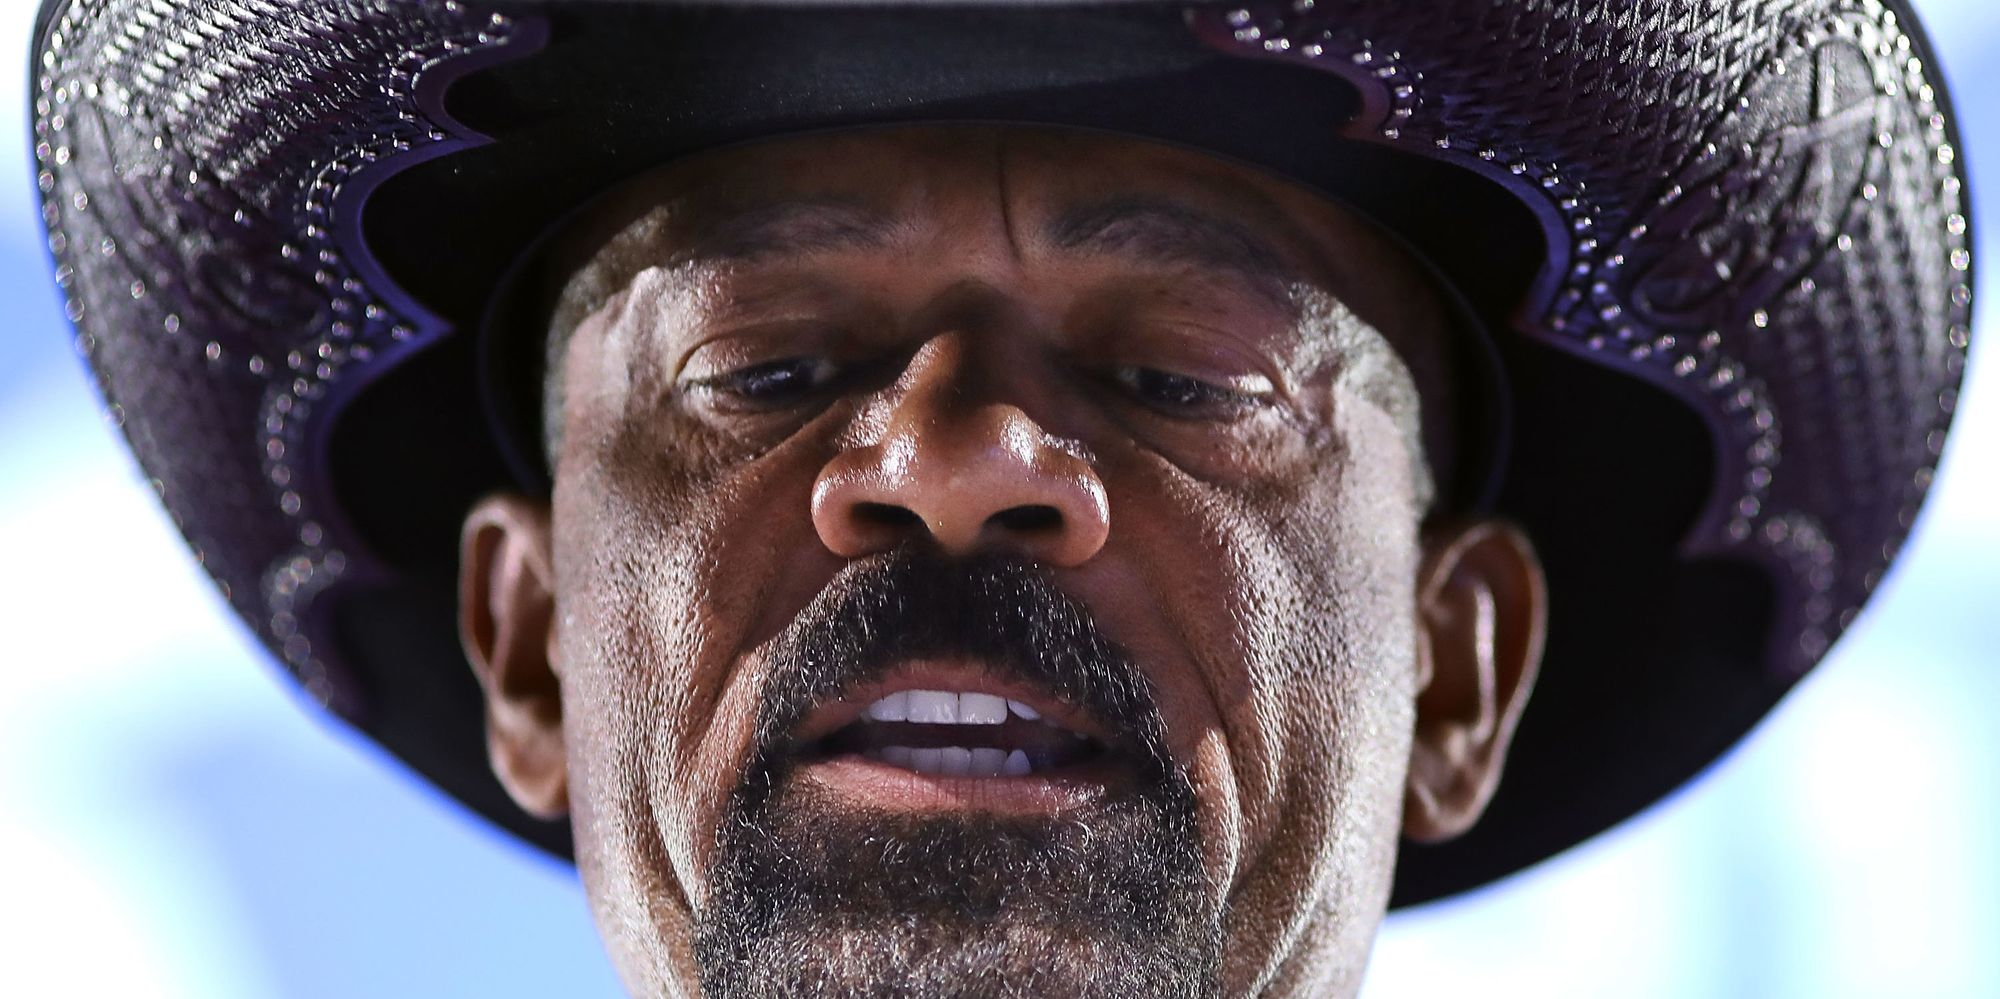 huffingtonpost.com - Man Who Died Of Thirst In Sheriff David Clarke's Jail Had Water Cut Off For A Week